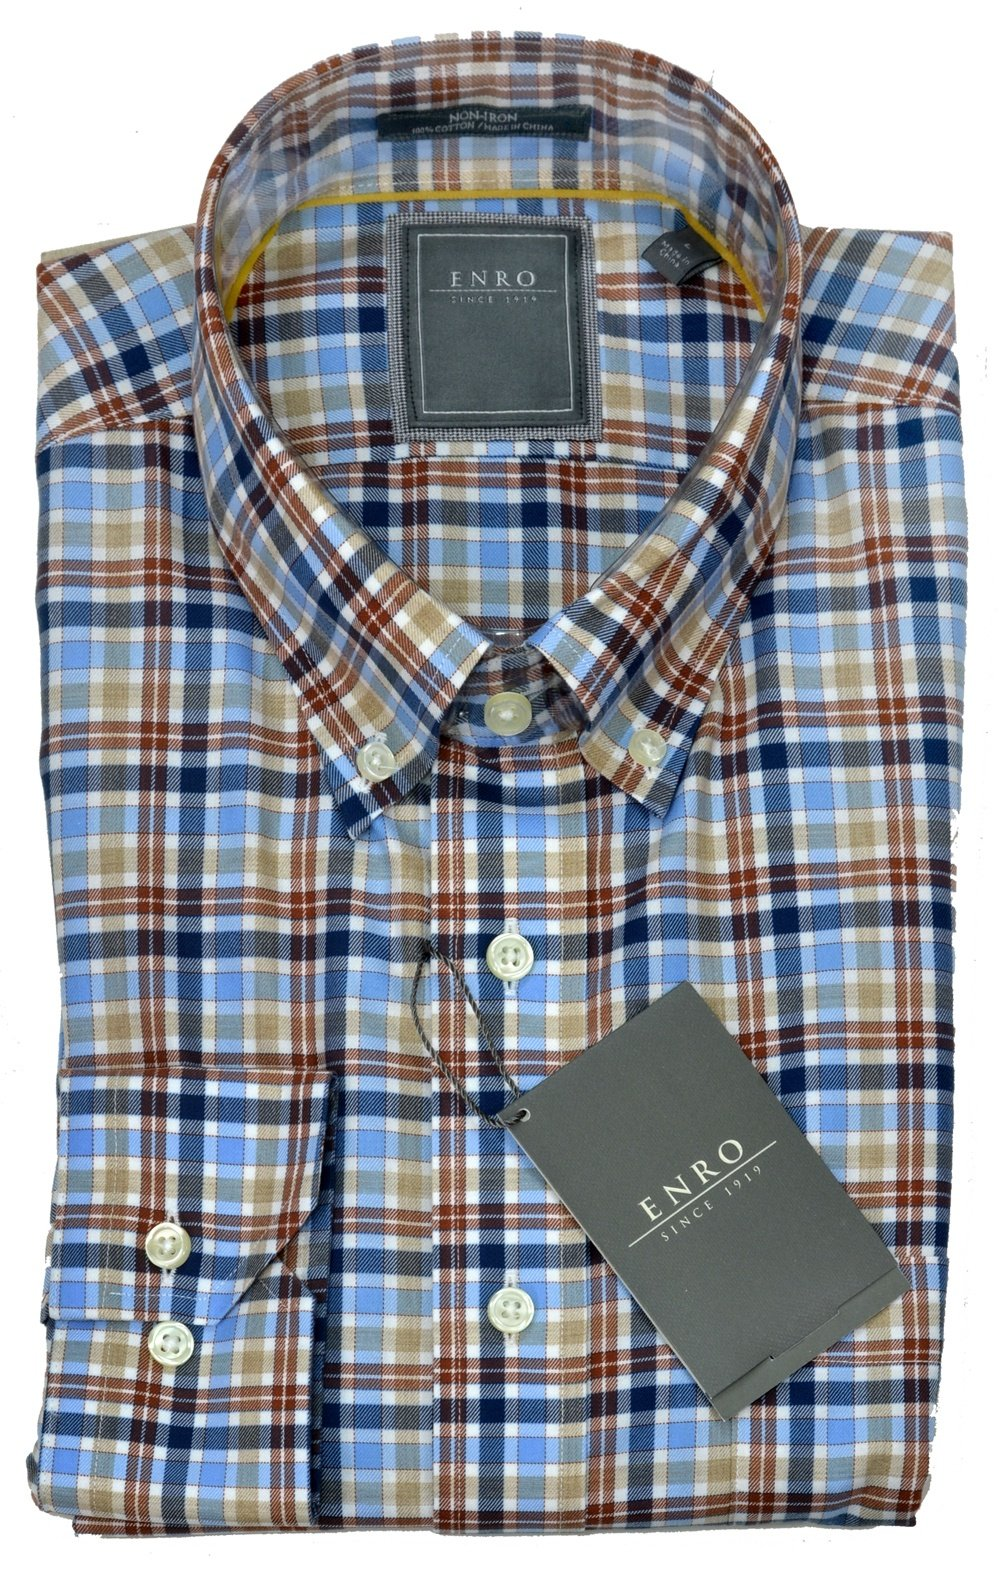 Enro Tan Multi Plaid Buttondown - Rainwater's Men's Clothing and Tuxedo Rental